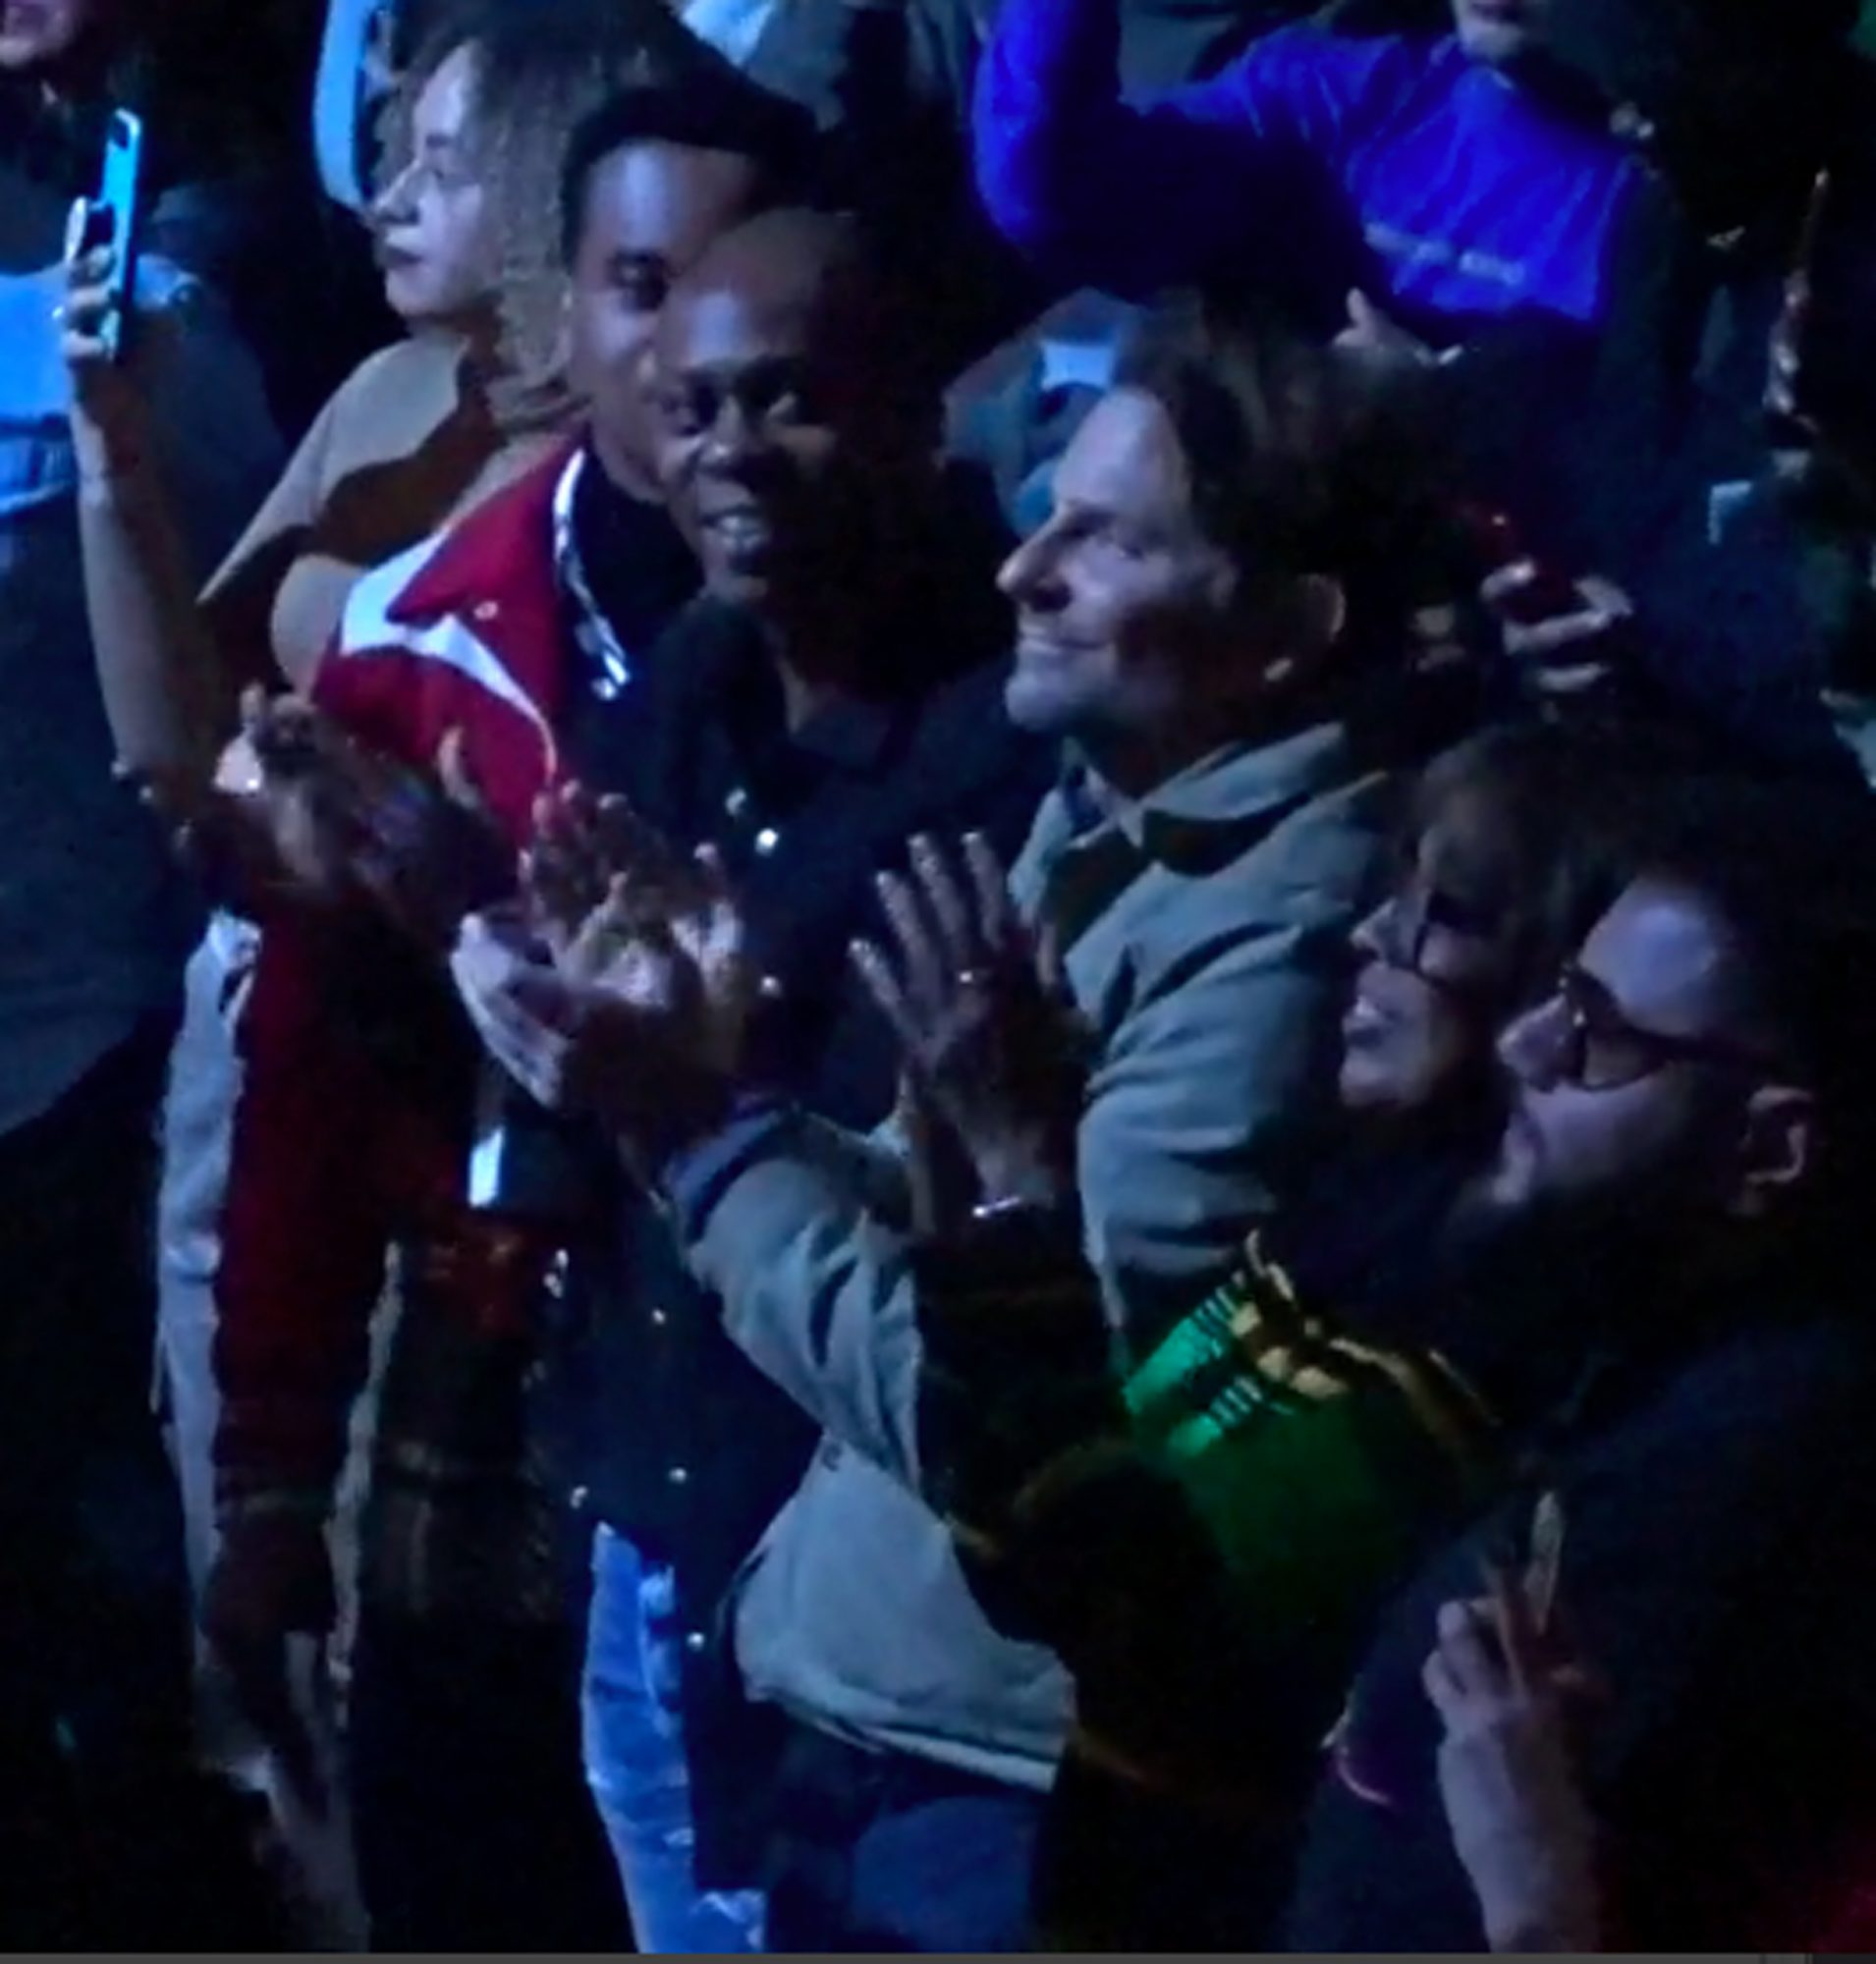 Dave Chappelle, Bradley Cooper, Gayle King, and Patrick Toussaint at Kanye Sunday Service